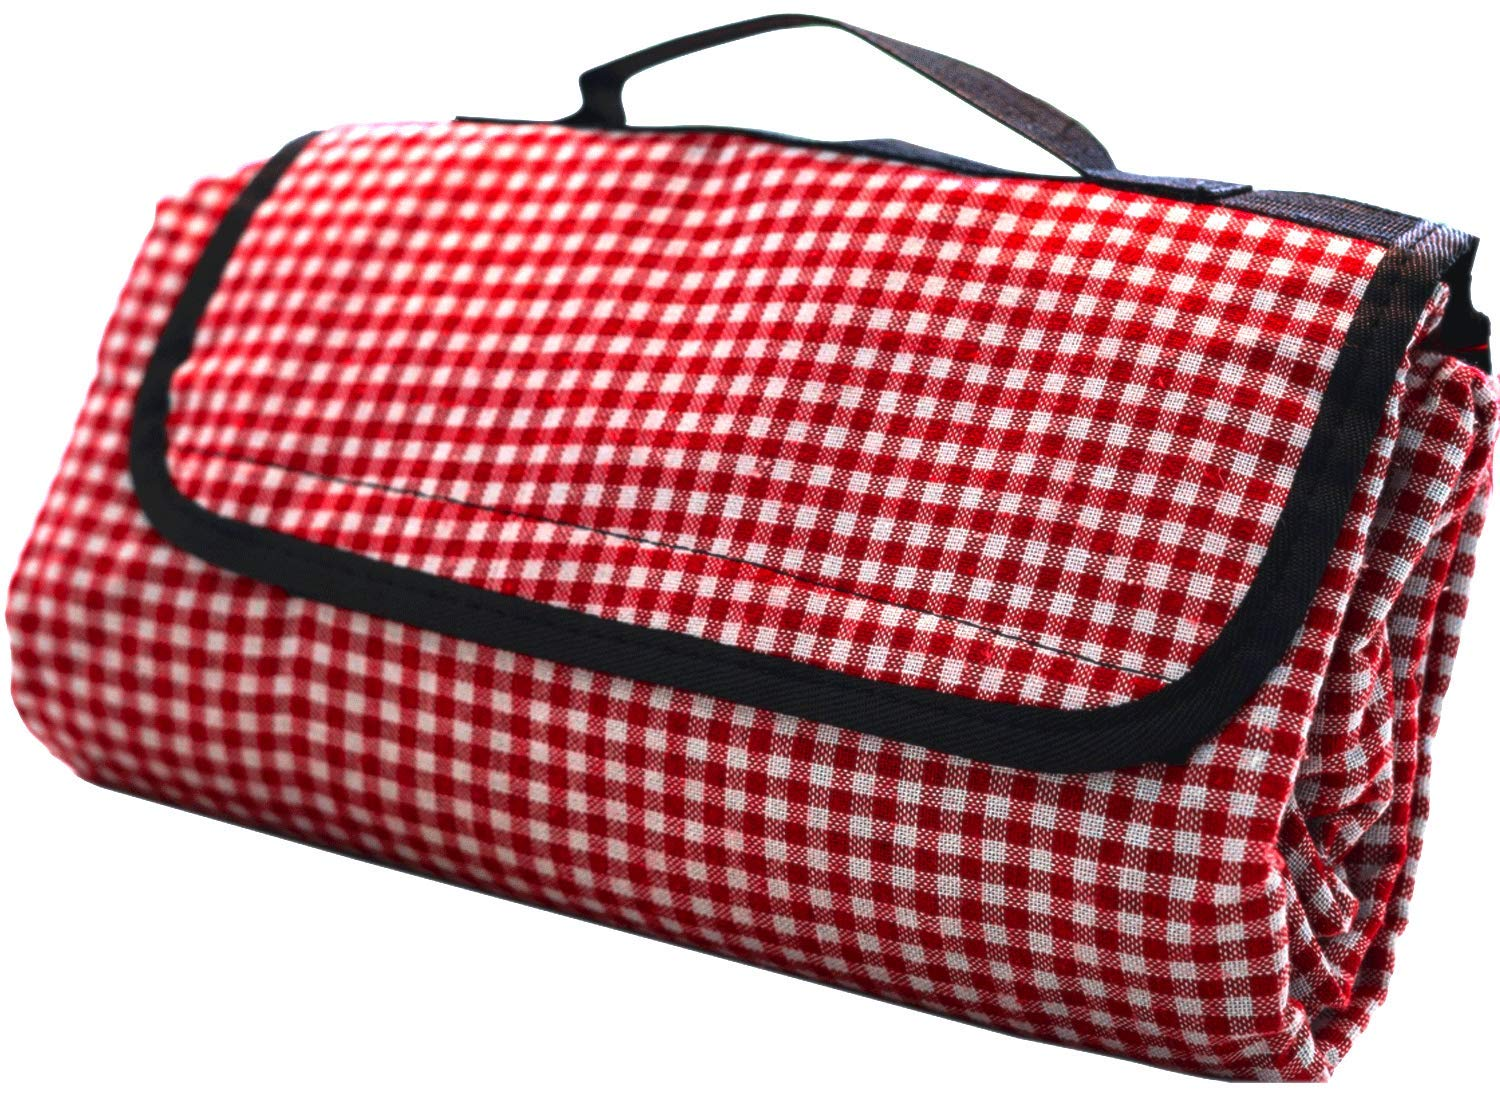 Extra Large Picnic Blanket | Oversized Beach Blanket Sand Proof | Outdoor Accessory for Handy Waterproof Stadium Mat | Water-Resistant Layer Outdoor Picnics | Great for Camping on Grass and Portable